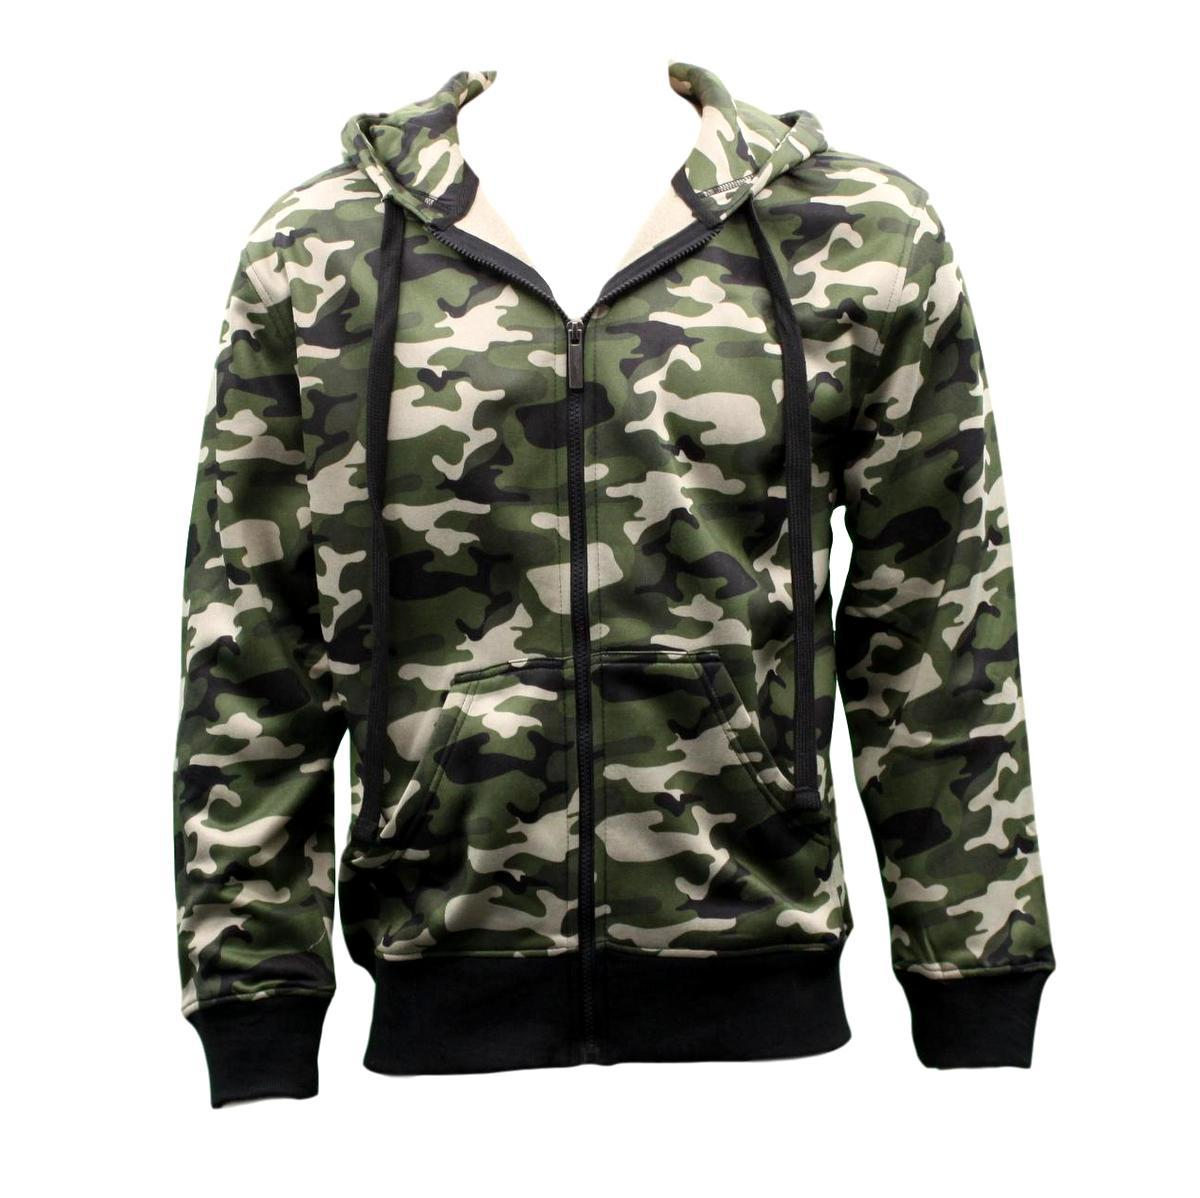 Adult-Men-039-s-Zip-Up-Hoodie-w-Fleece-Camouflage-Camo-Military-Print-Hooded-Jacket thumbnail 5